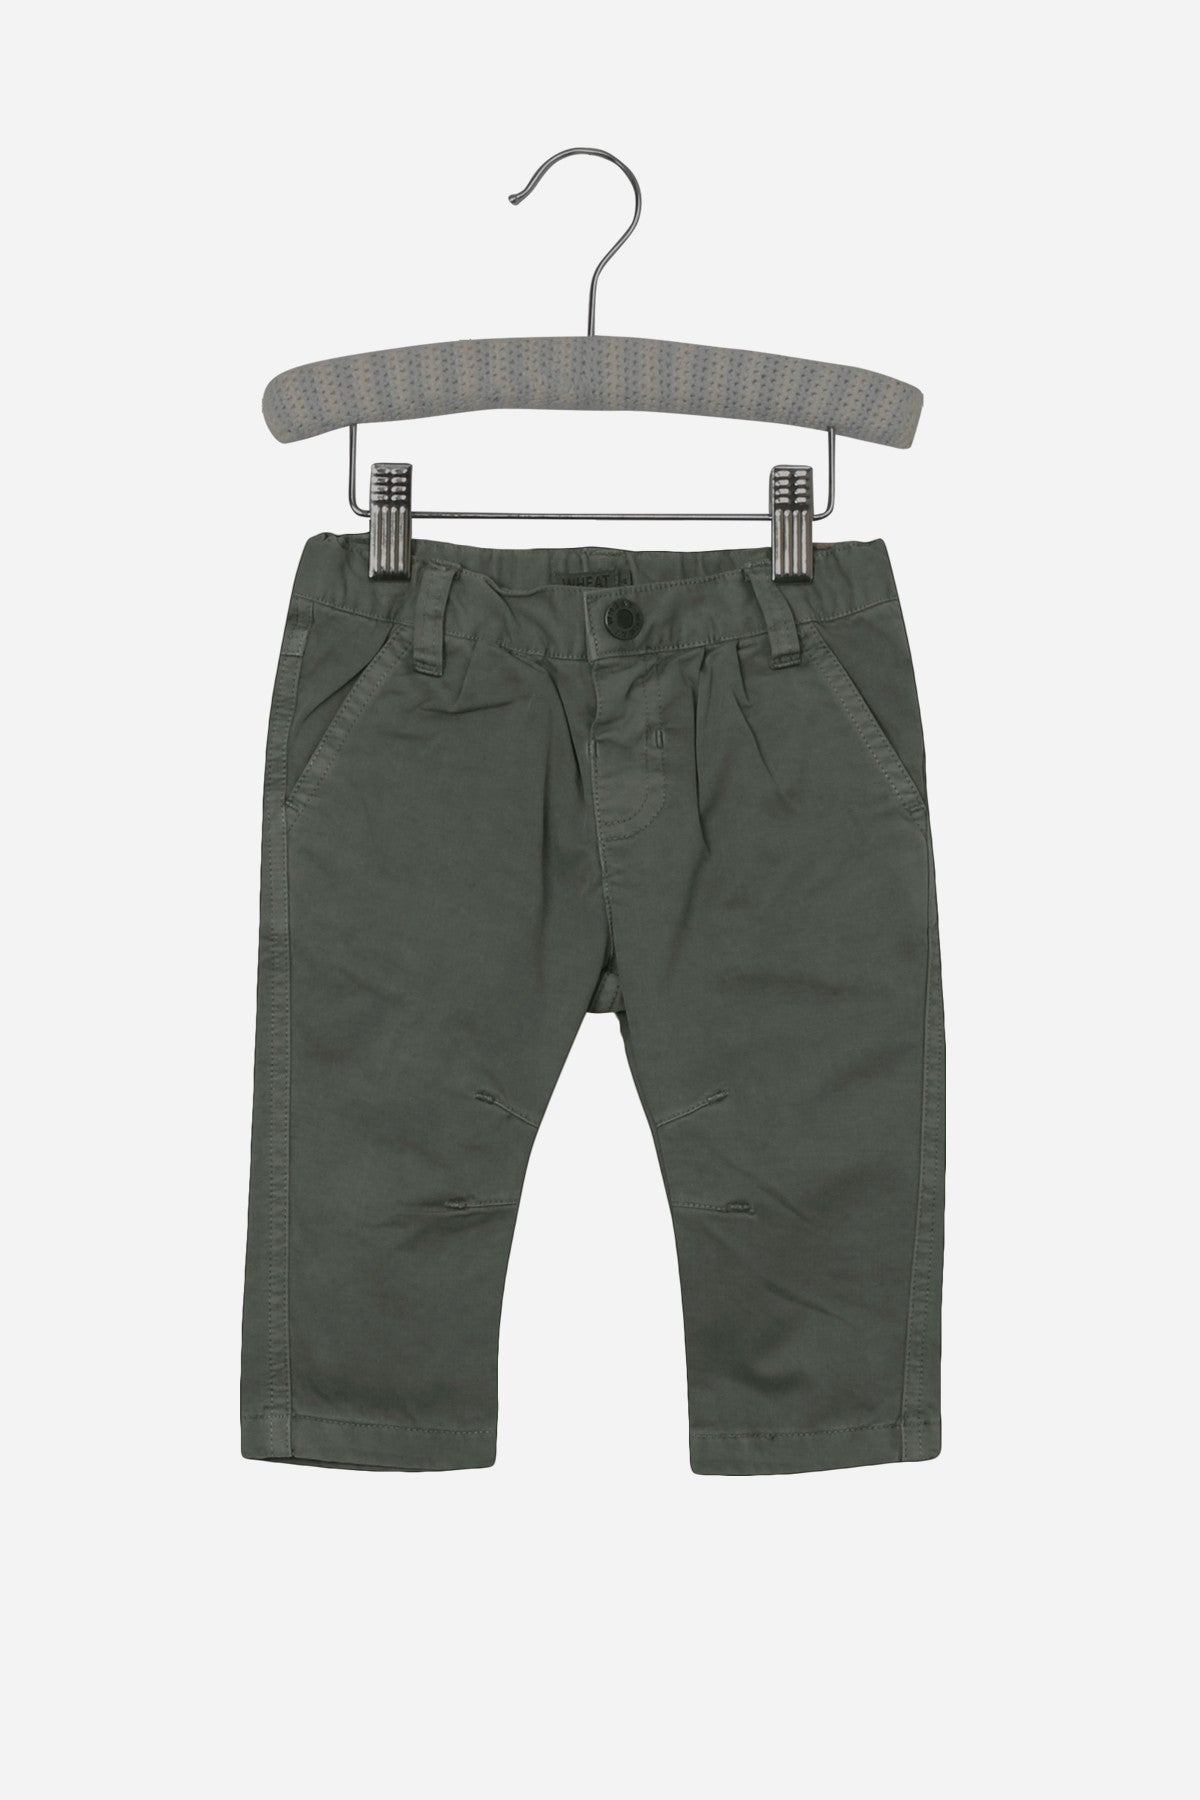 Baby Boy Cadet Blue Pull-On Chino Shorts by Gymboree. % cotton twill, Ribbed waist with functional drawstring, Front and back design, Machine wash; imported and Collection Name: Bright Days Ahead. GYMBOREE REWARDS. Get in on the good stuff. Returns Ship Free. We want you to be % happy. GYMBUCKS.